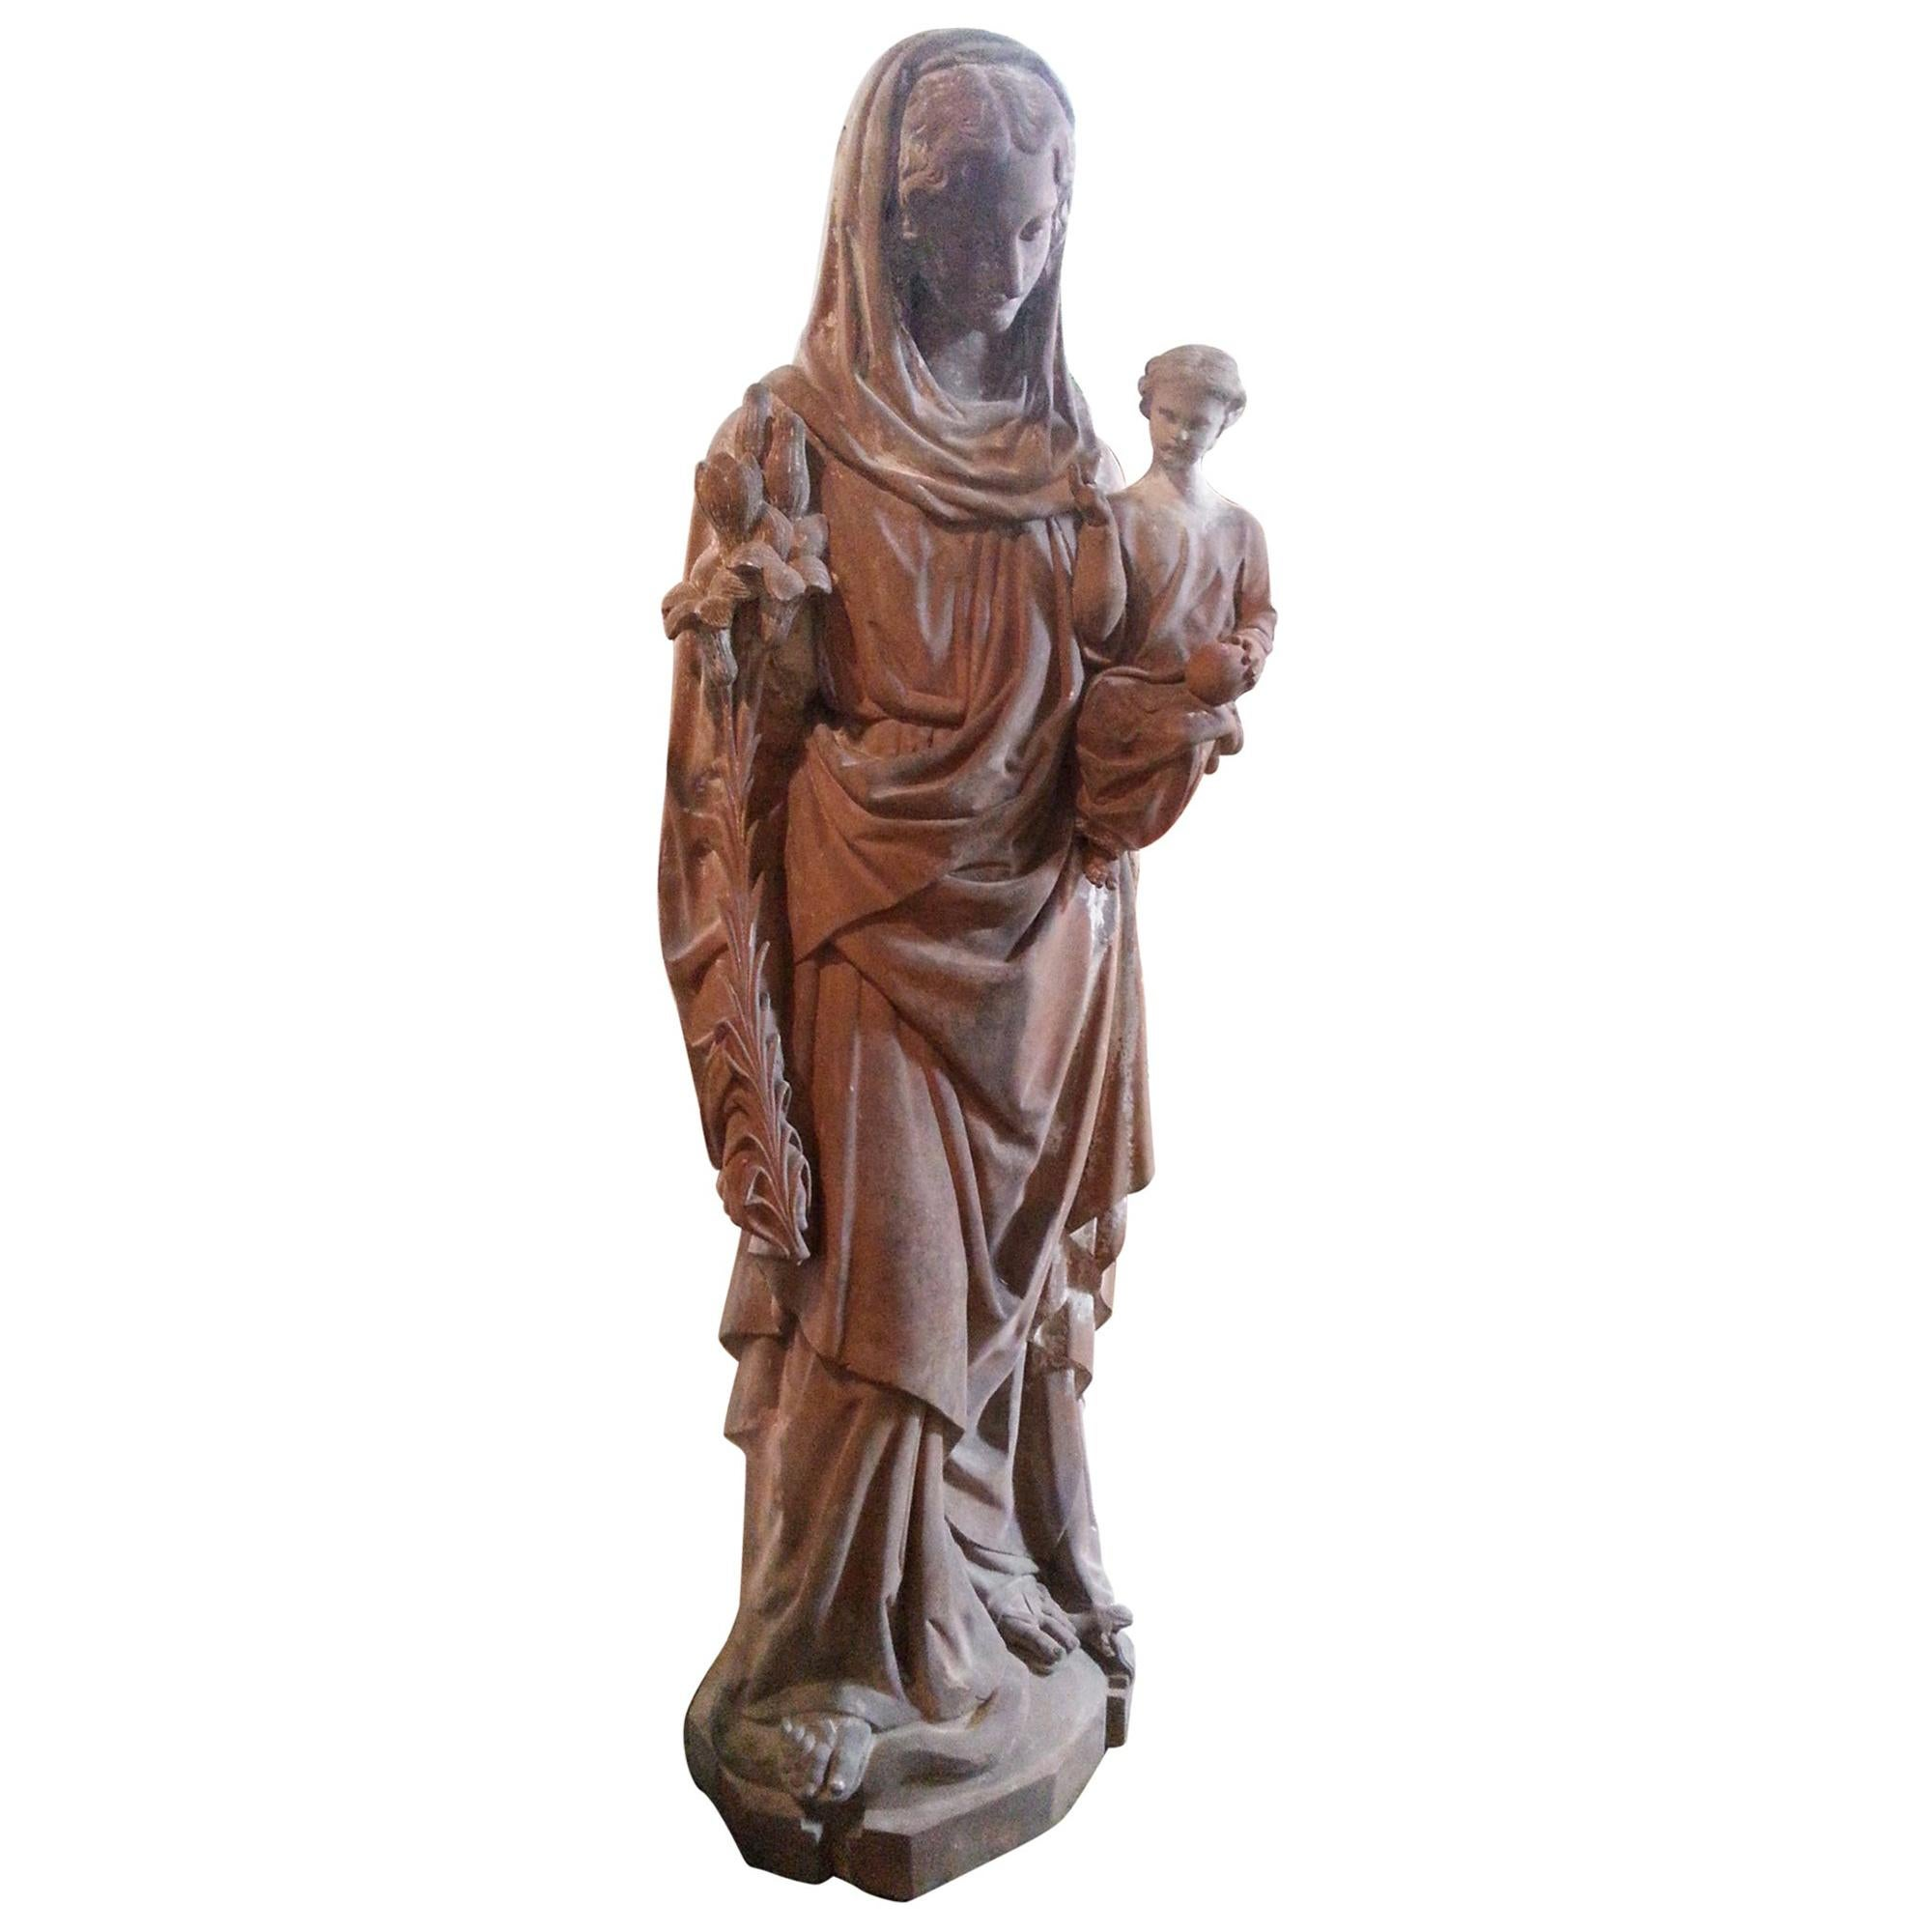 18th Century French Statue in Terracotta